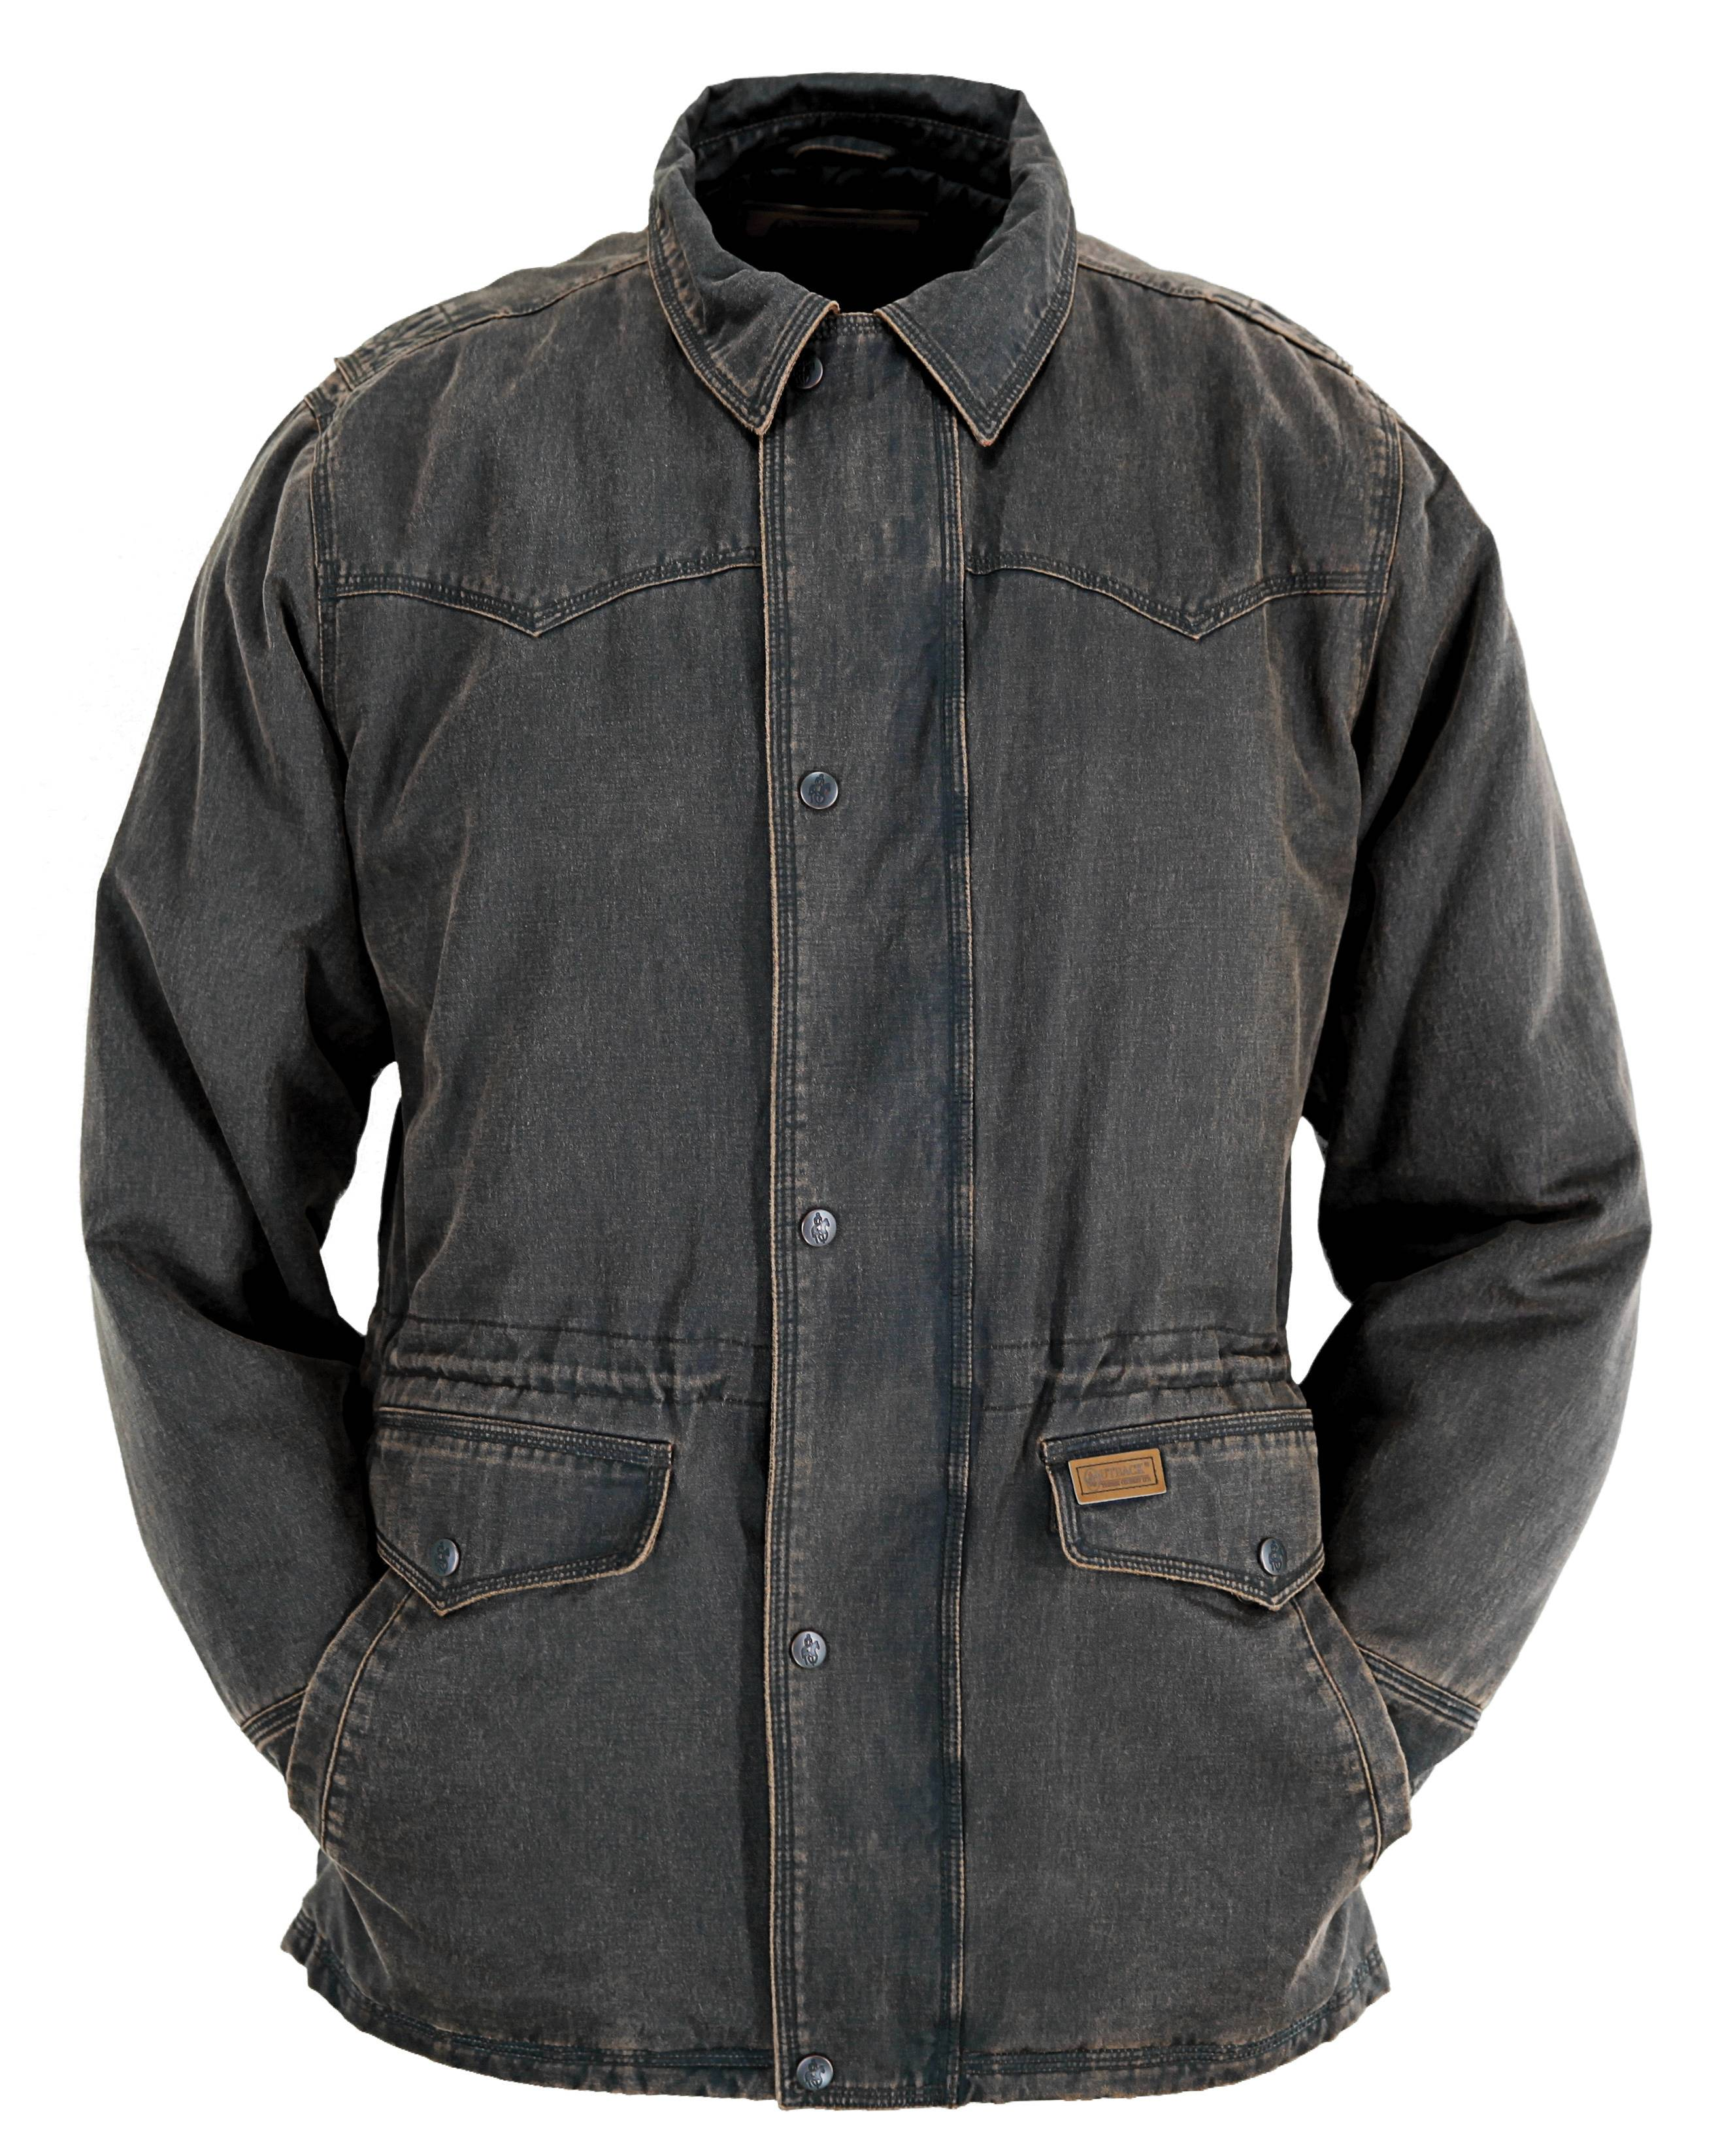 Outback Trading Rancher's Jacket